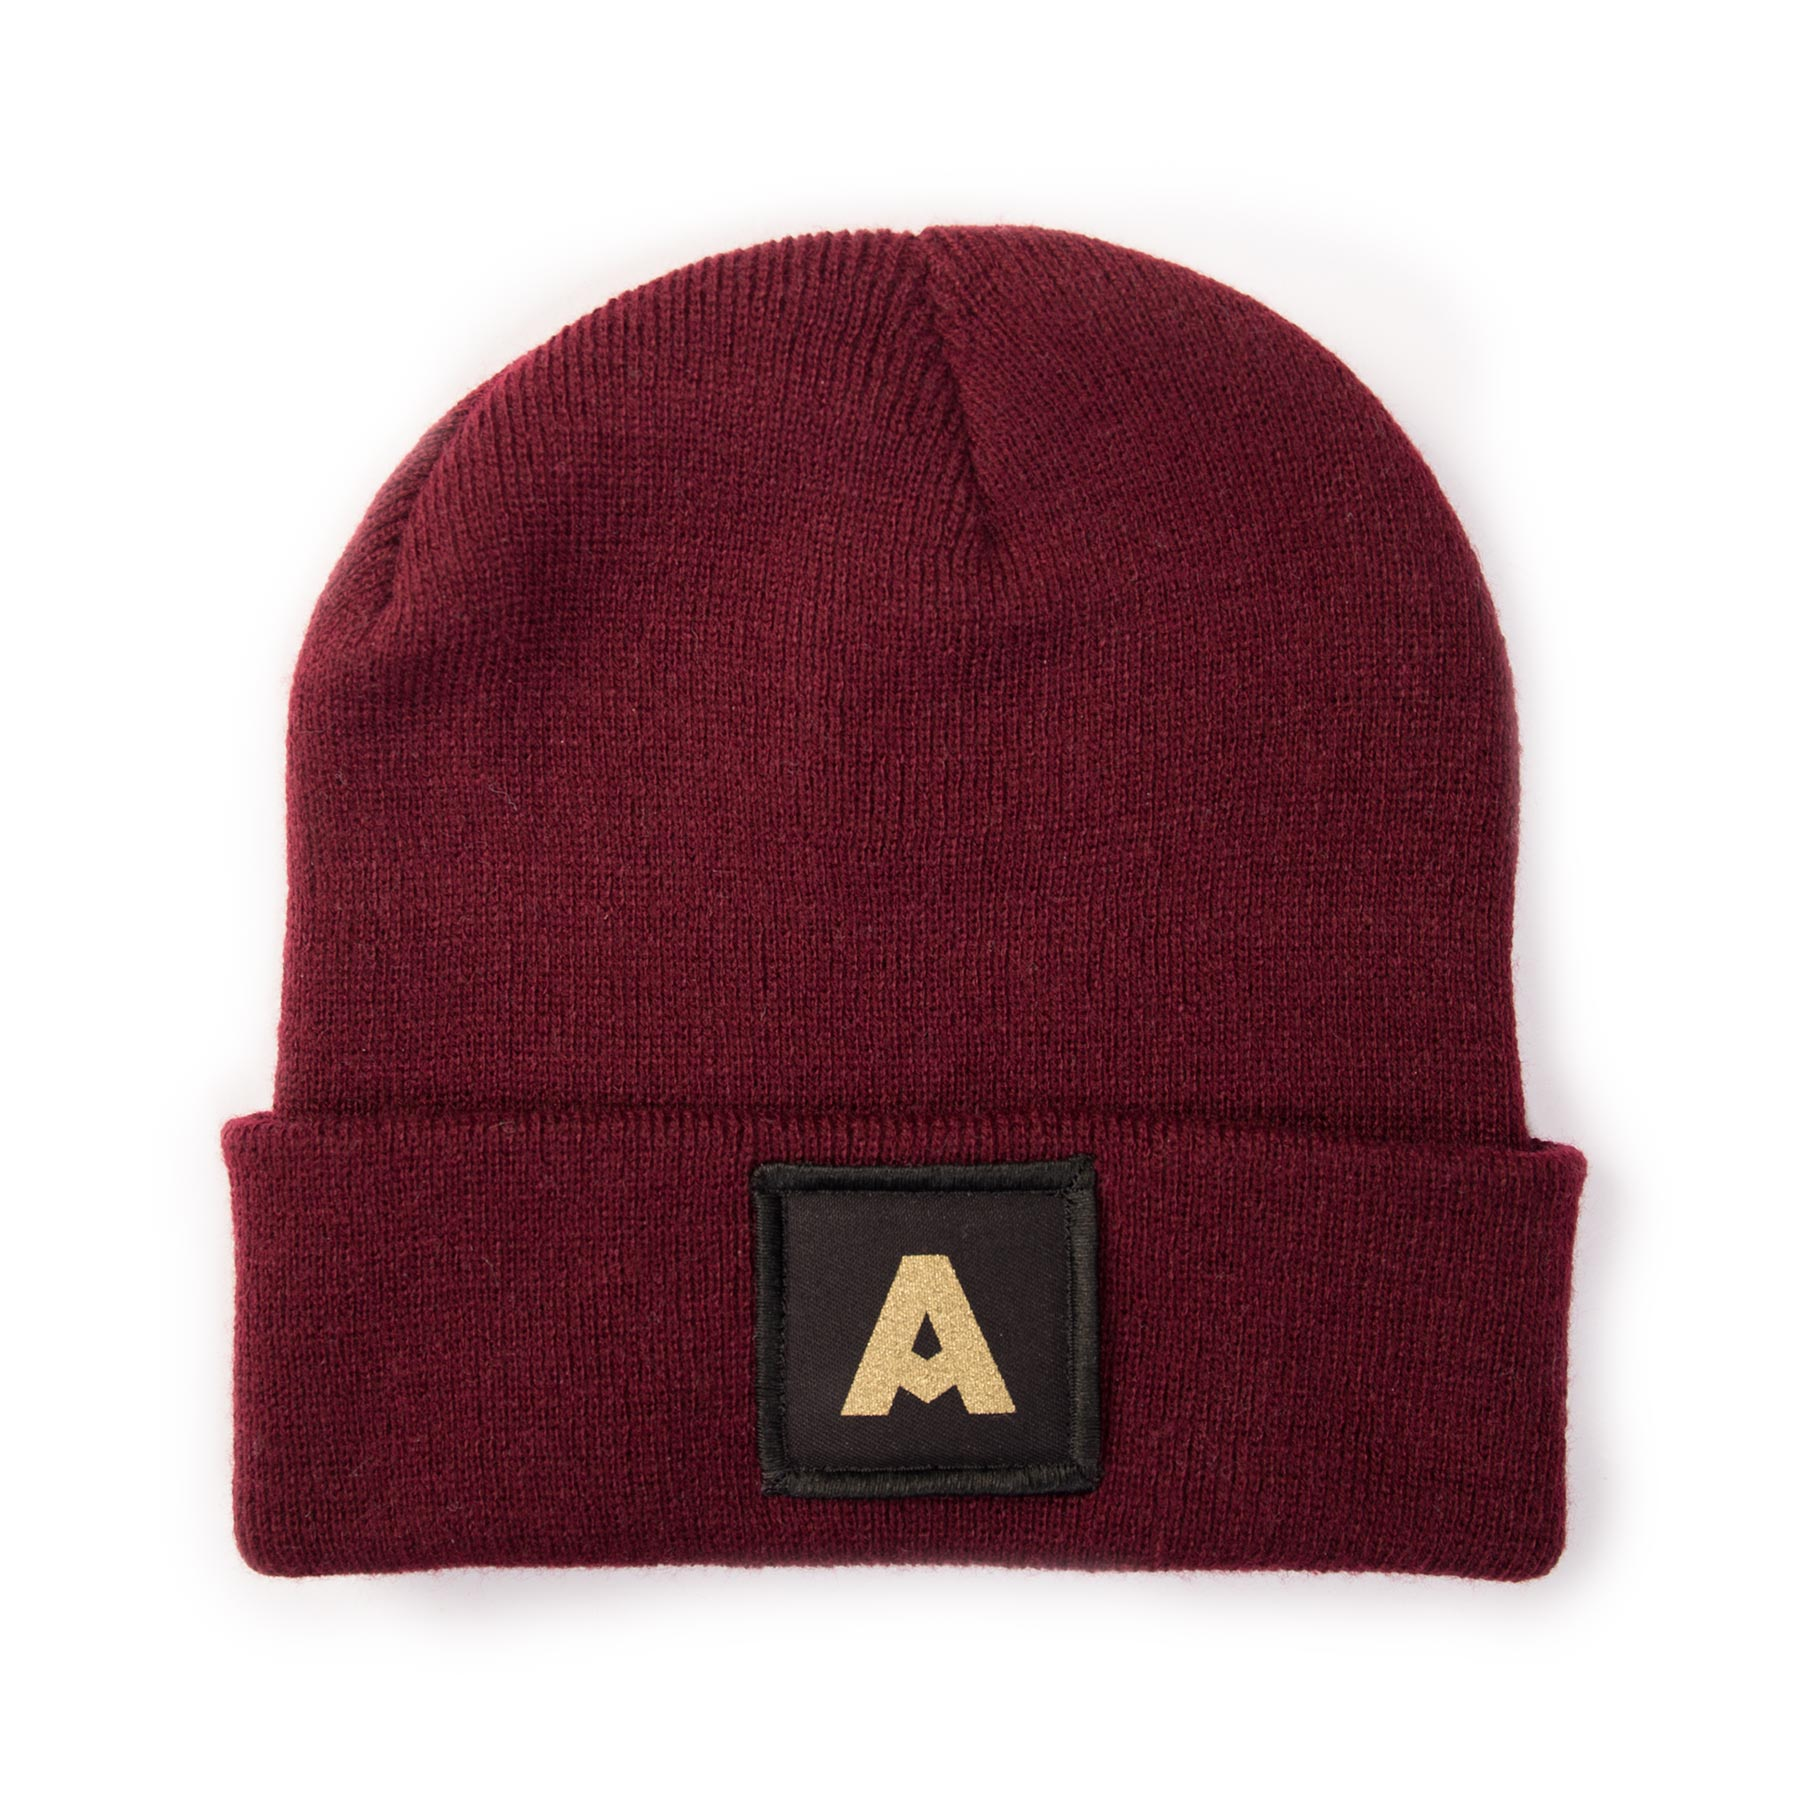 Screen Printed 5cm x 5cm Patch Beanies